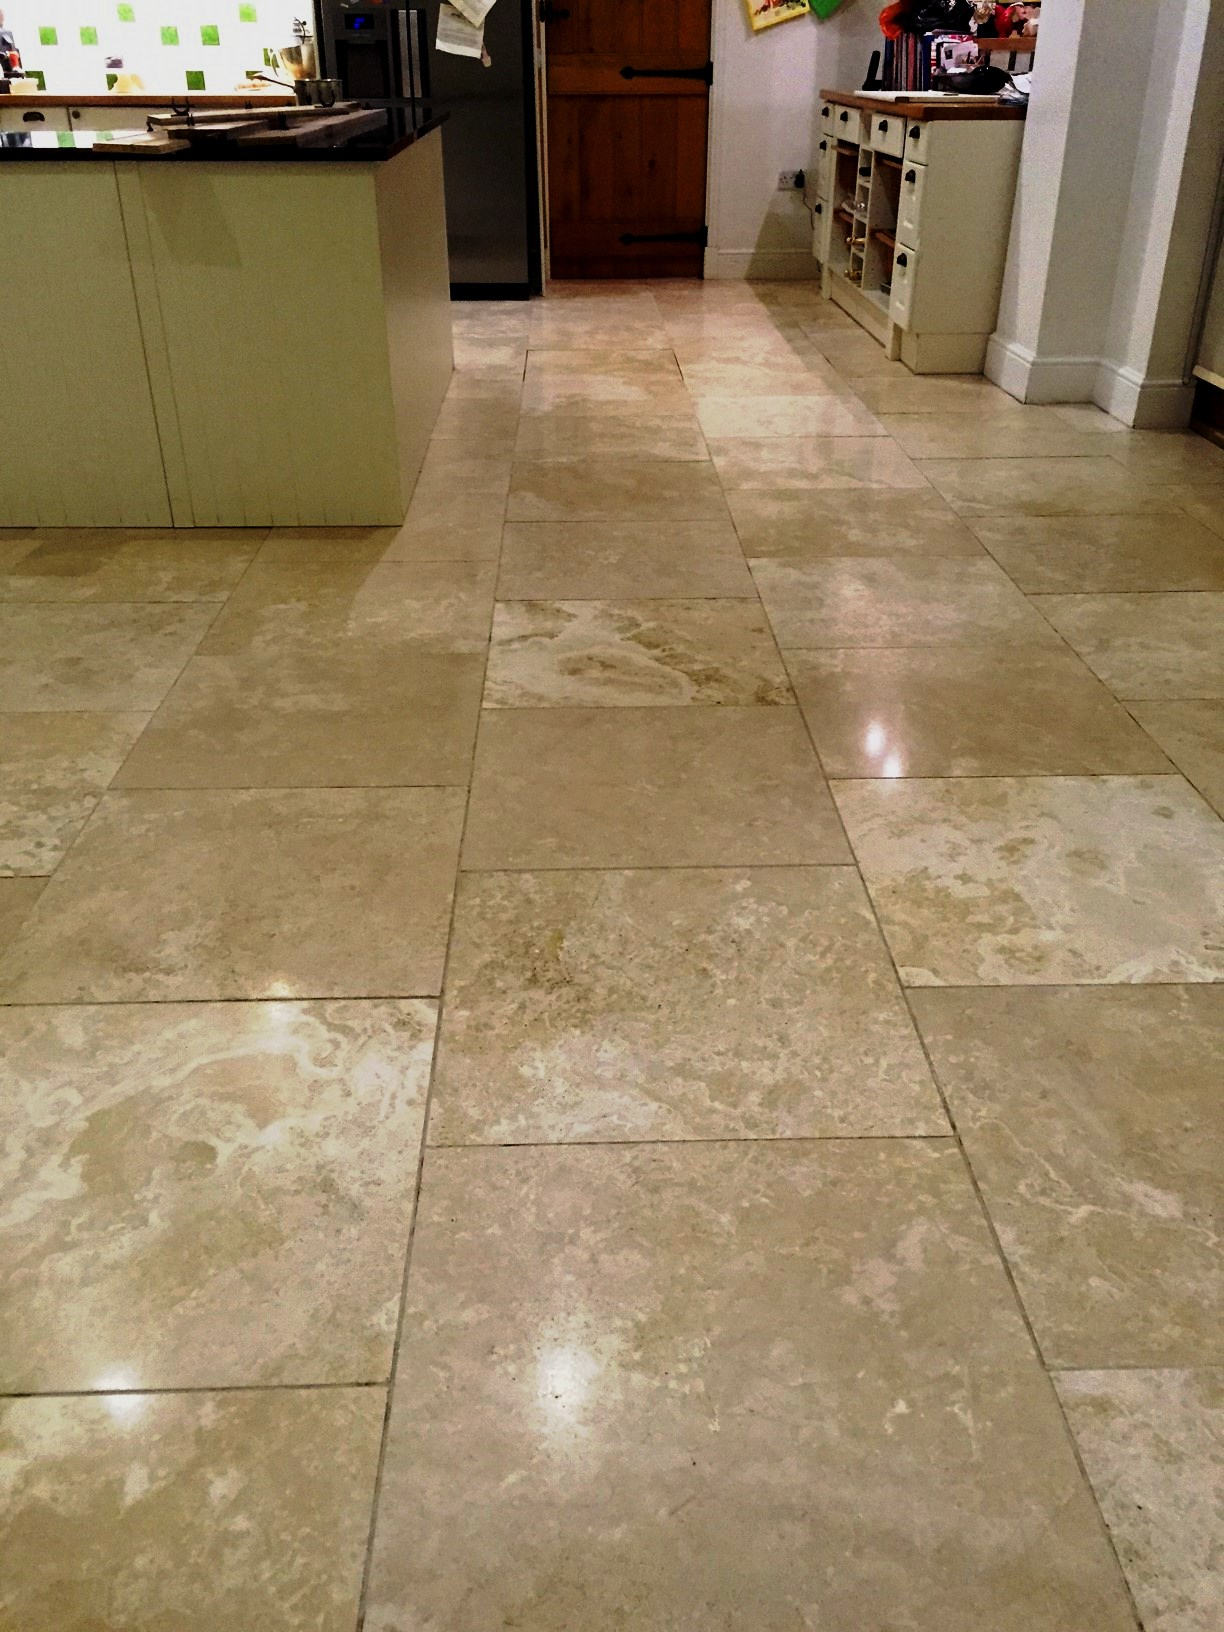 Travertine Marble Tile : Travertine posts stone cleaning and polishing tips for